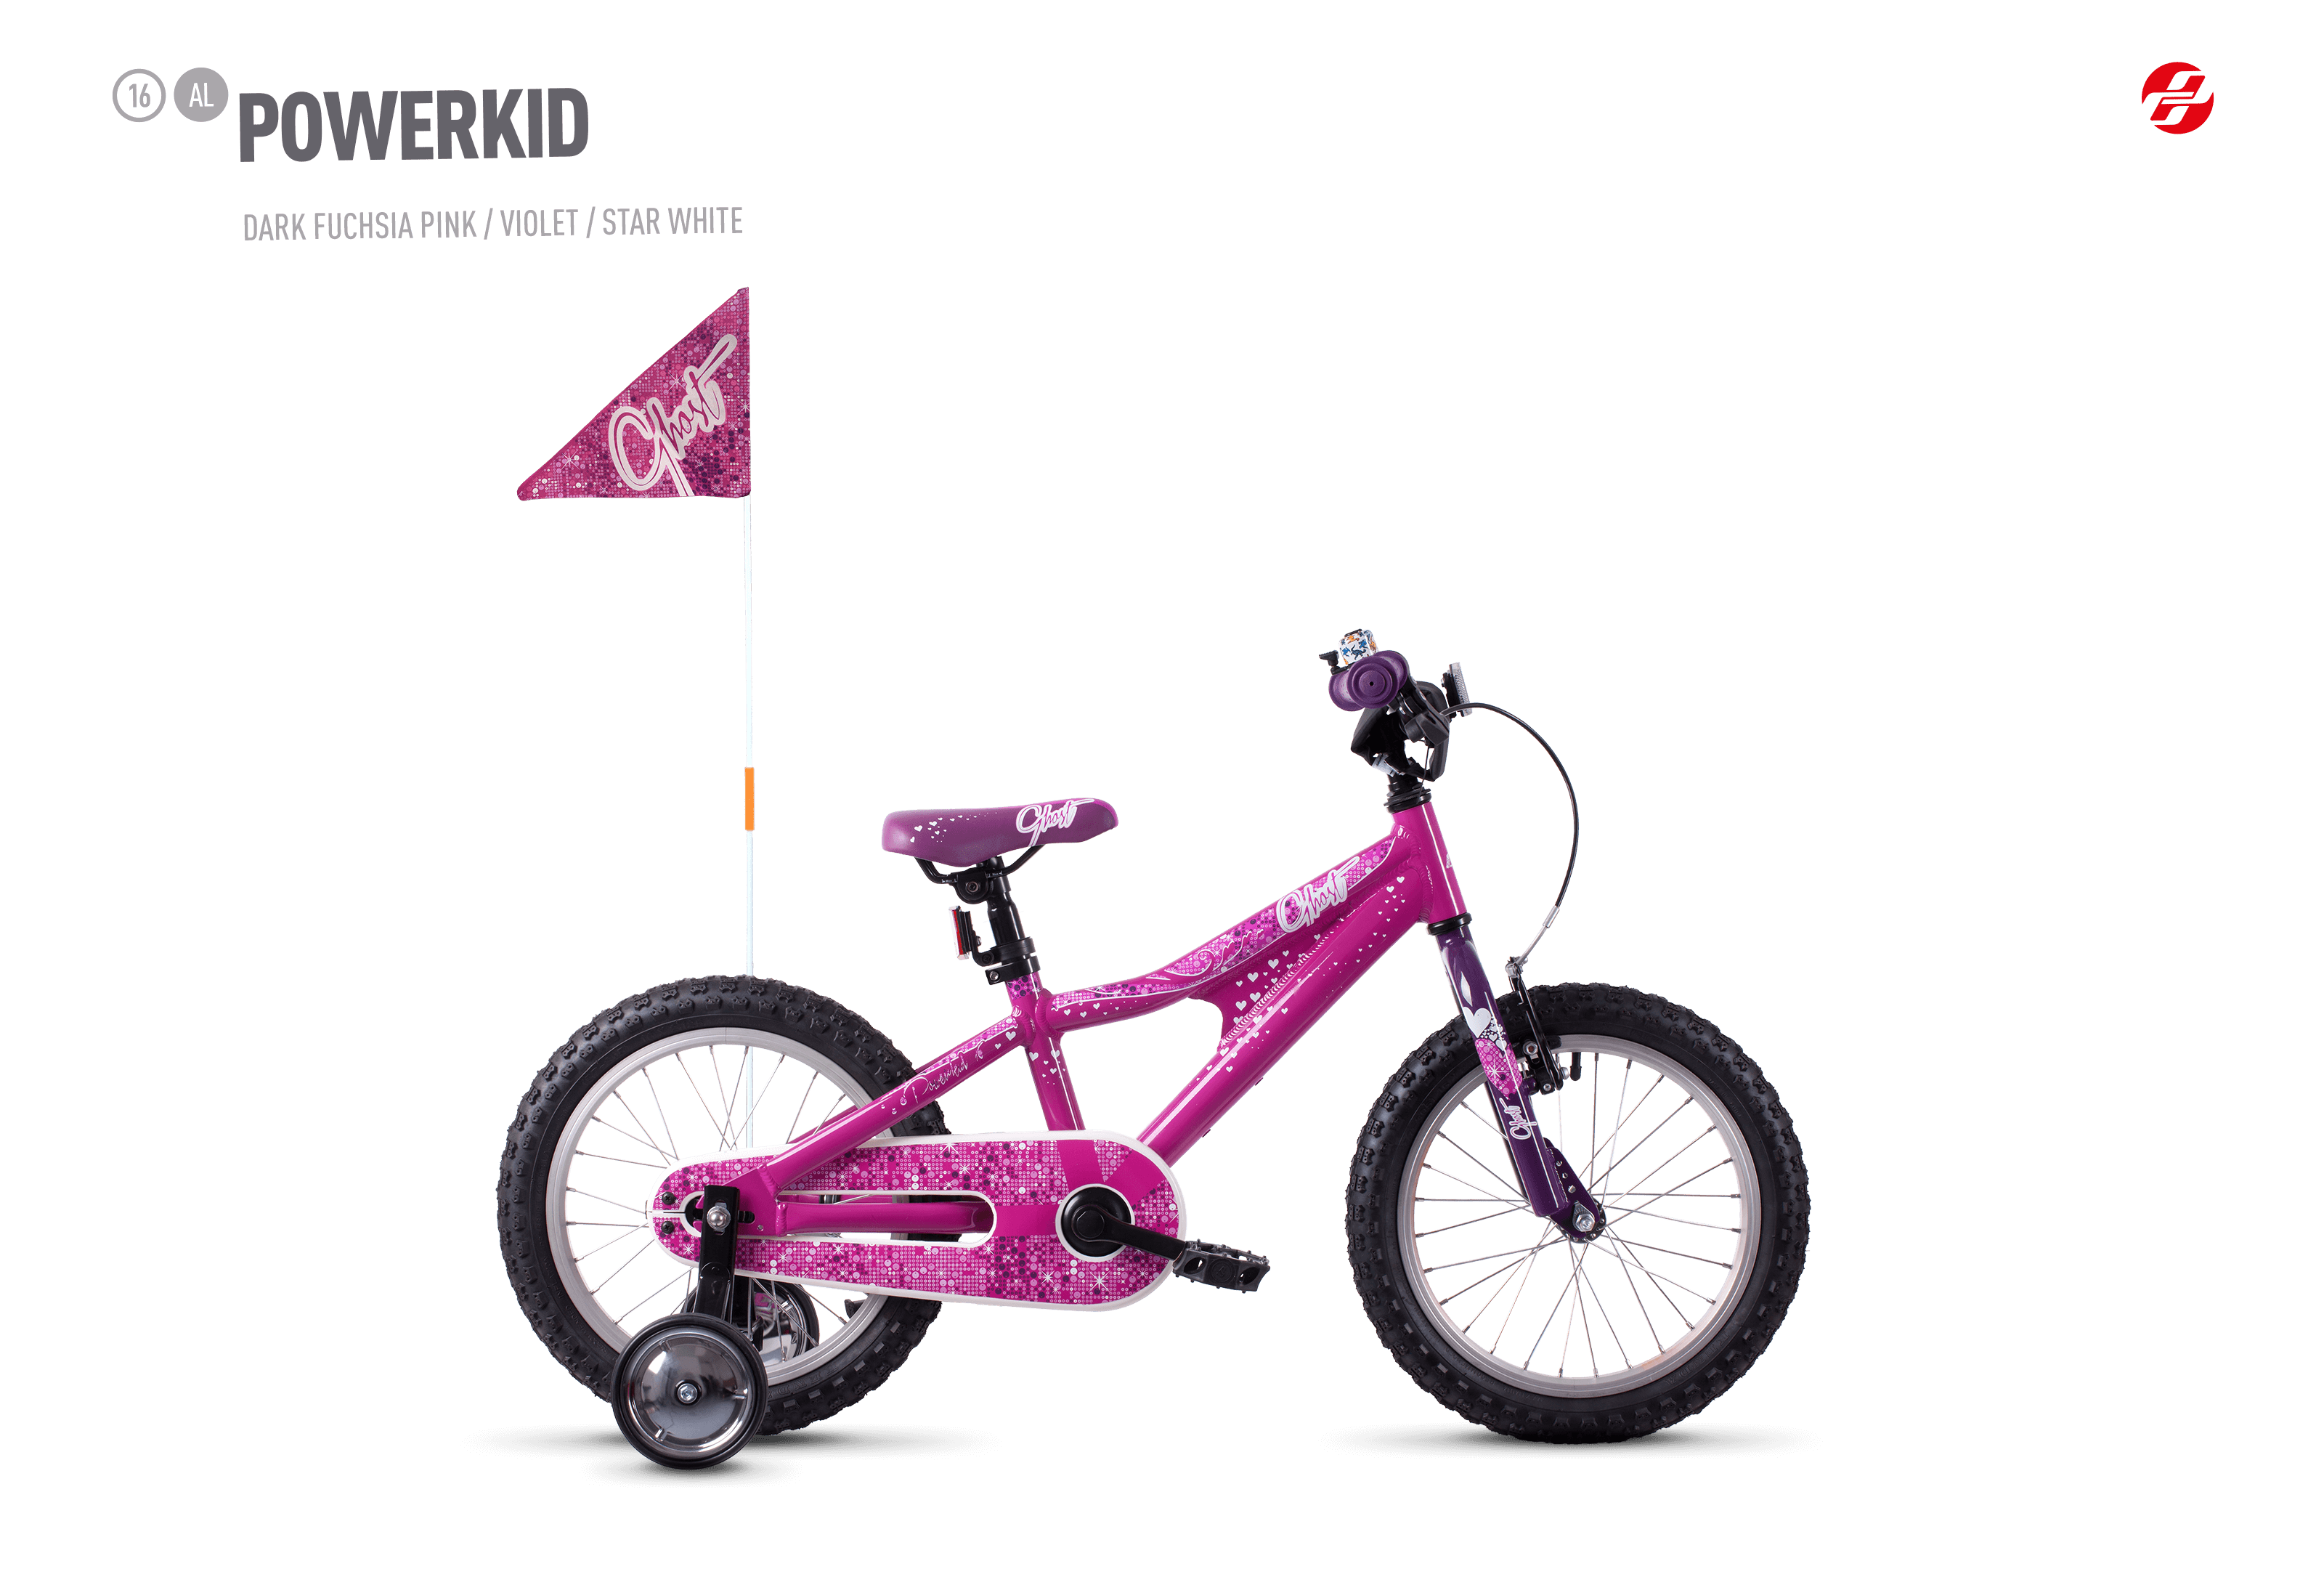 Bicykel Ghost Powerkid 16 pink / violet